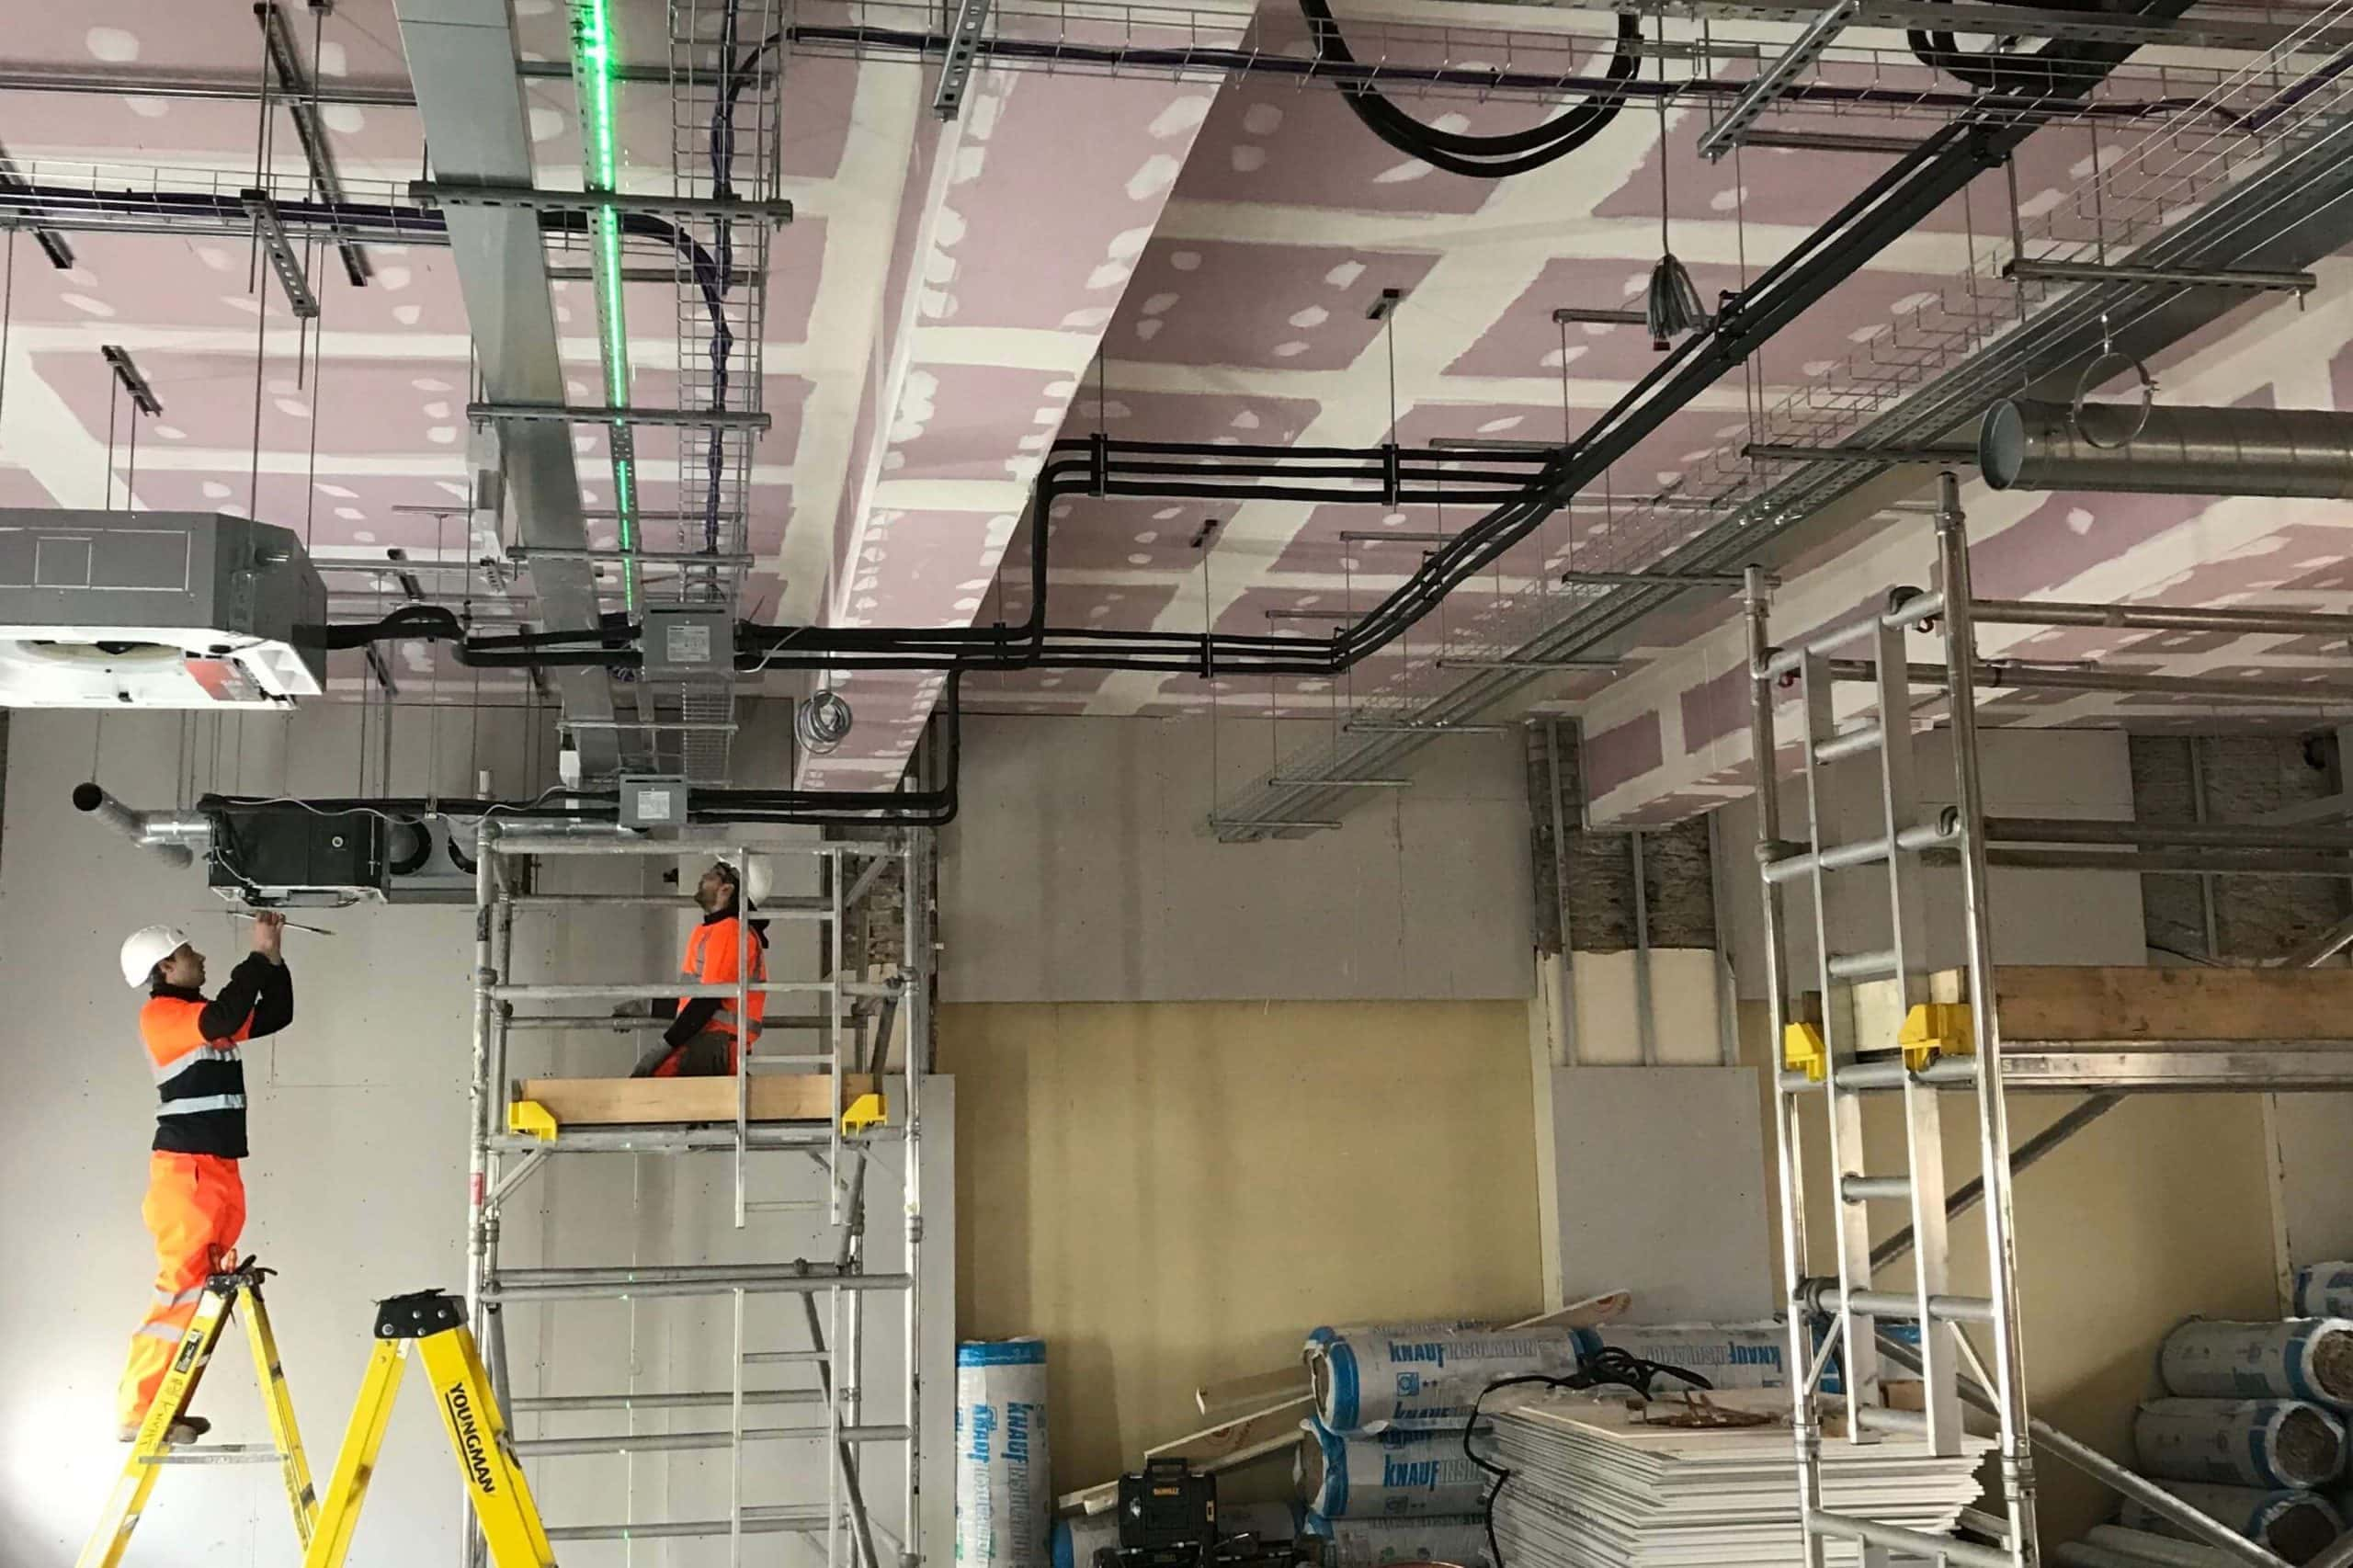 Norwood junction large commercial air conditioning solution by SubCool FM with engineers fitting hanging ceiling units